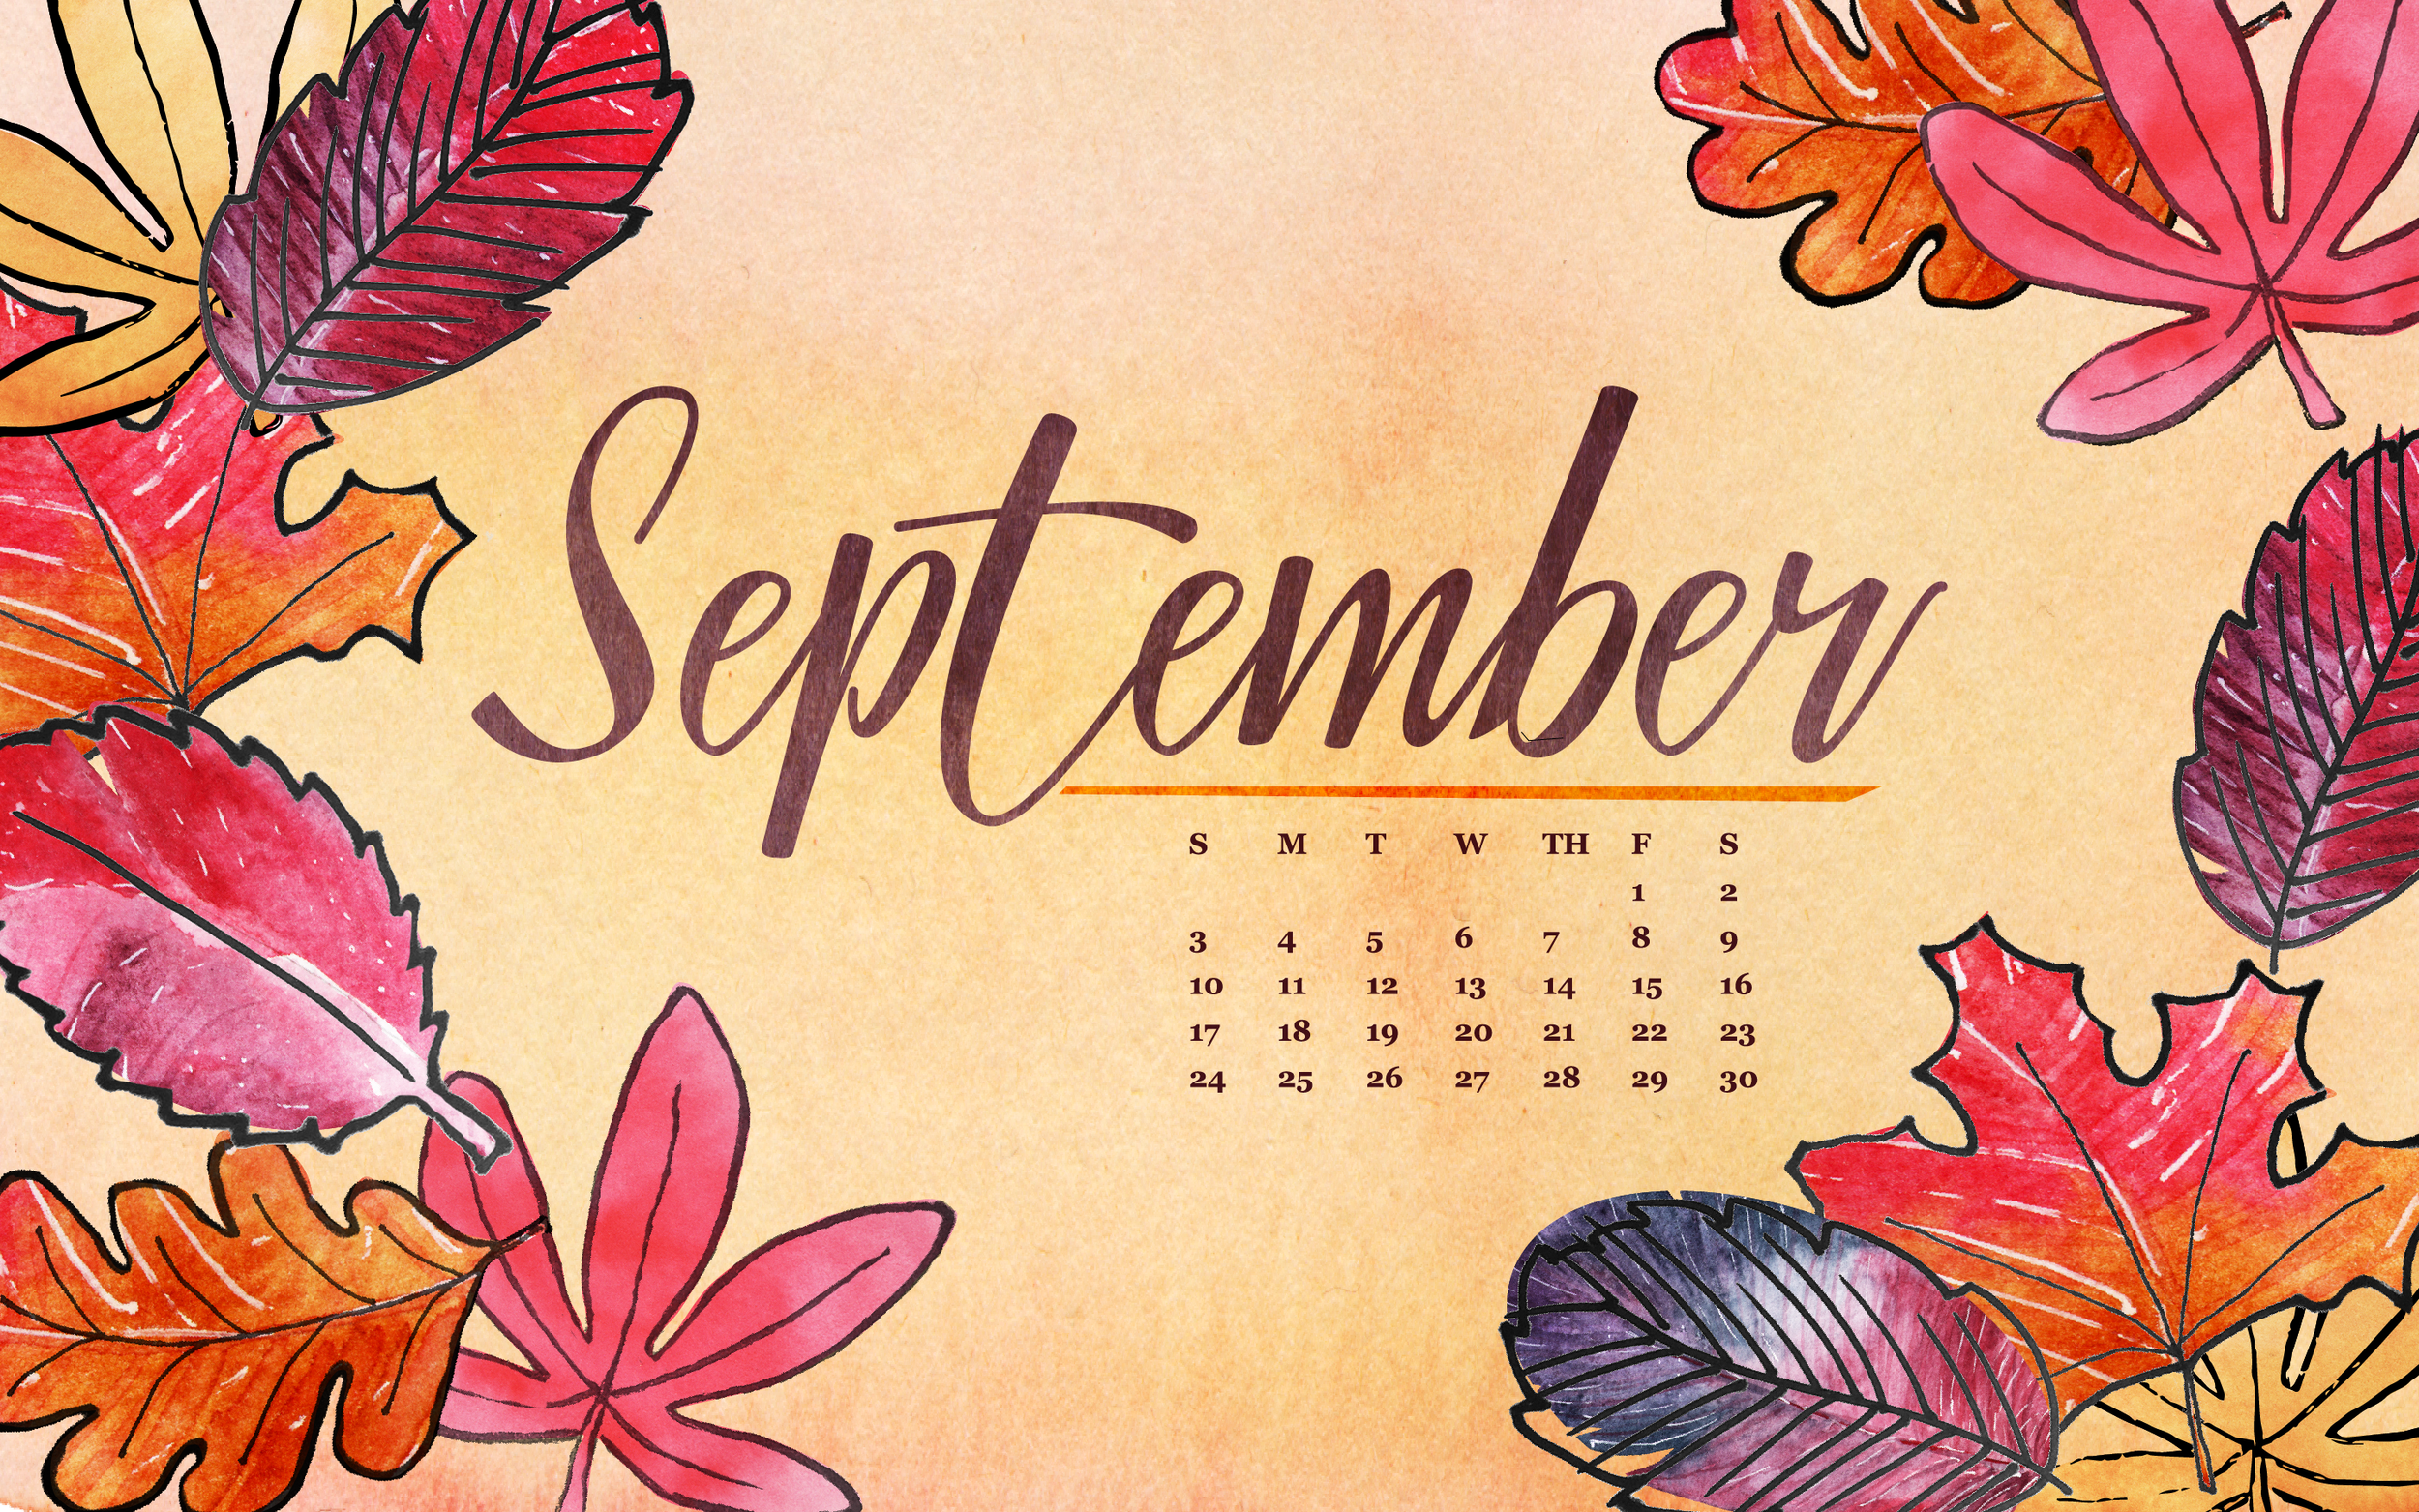 Free Download Tech Wallpapers For September Erica The Illustrator